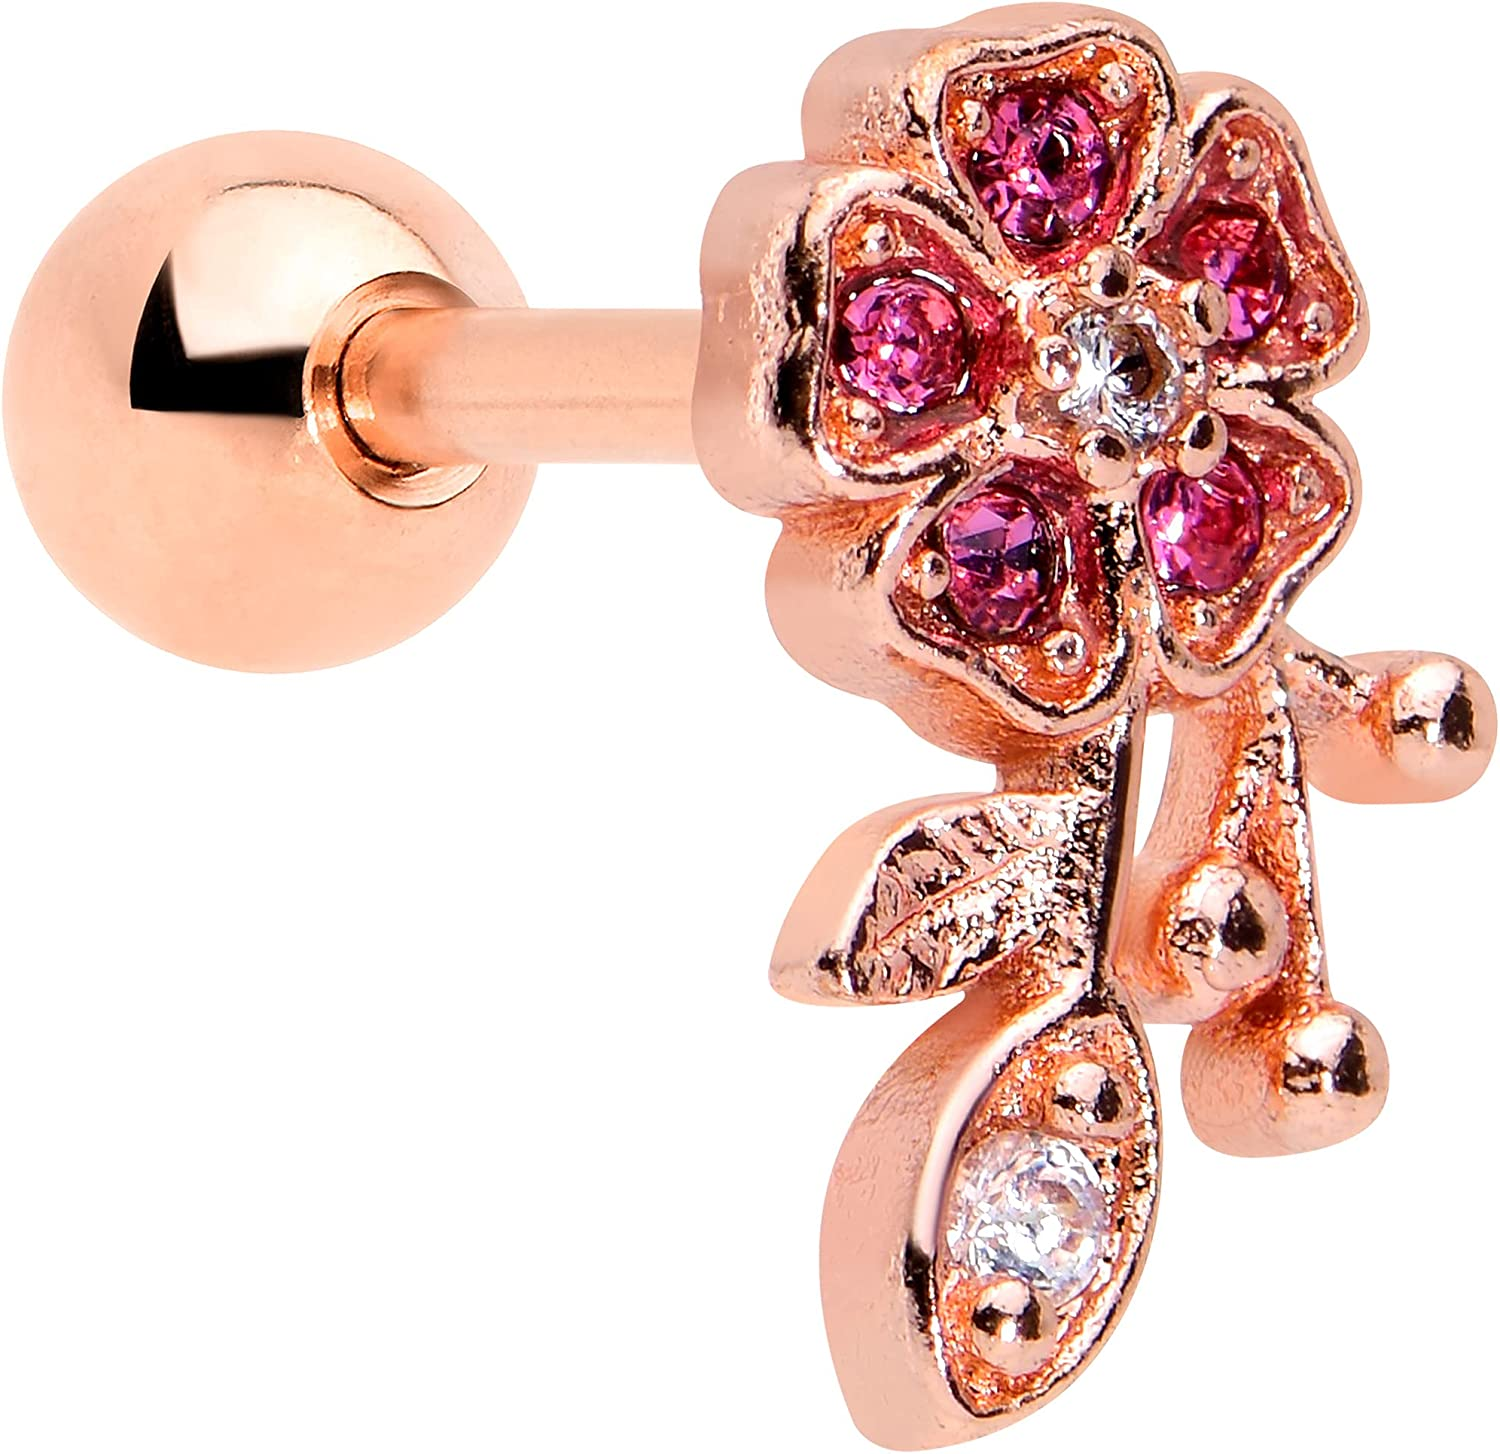 Body Candy 16G Womens PVD Steel Rosy Pink Accent Heart Flower Cartilage Earring Helix Tragus Jewelry 1/4